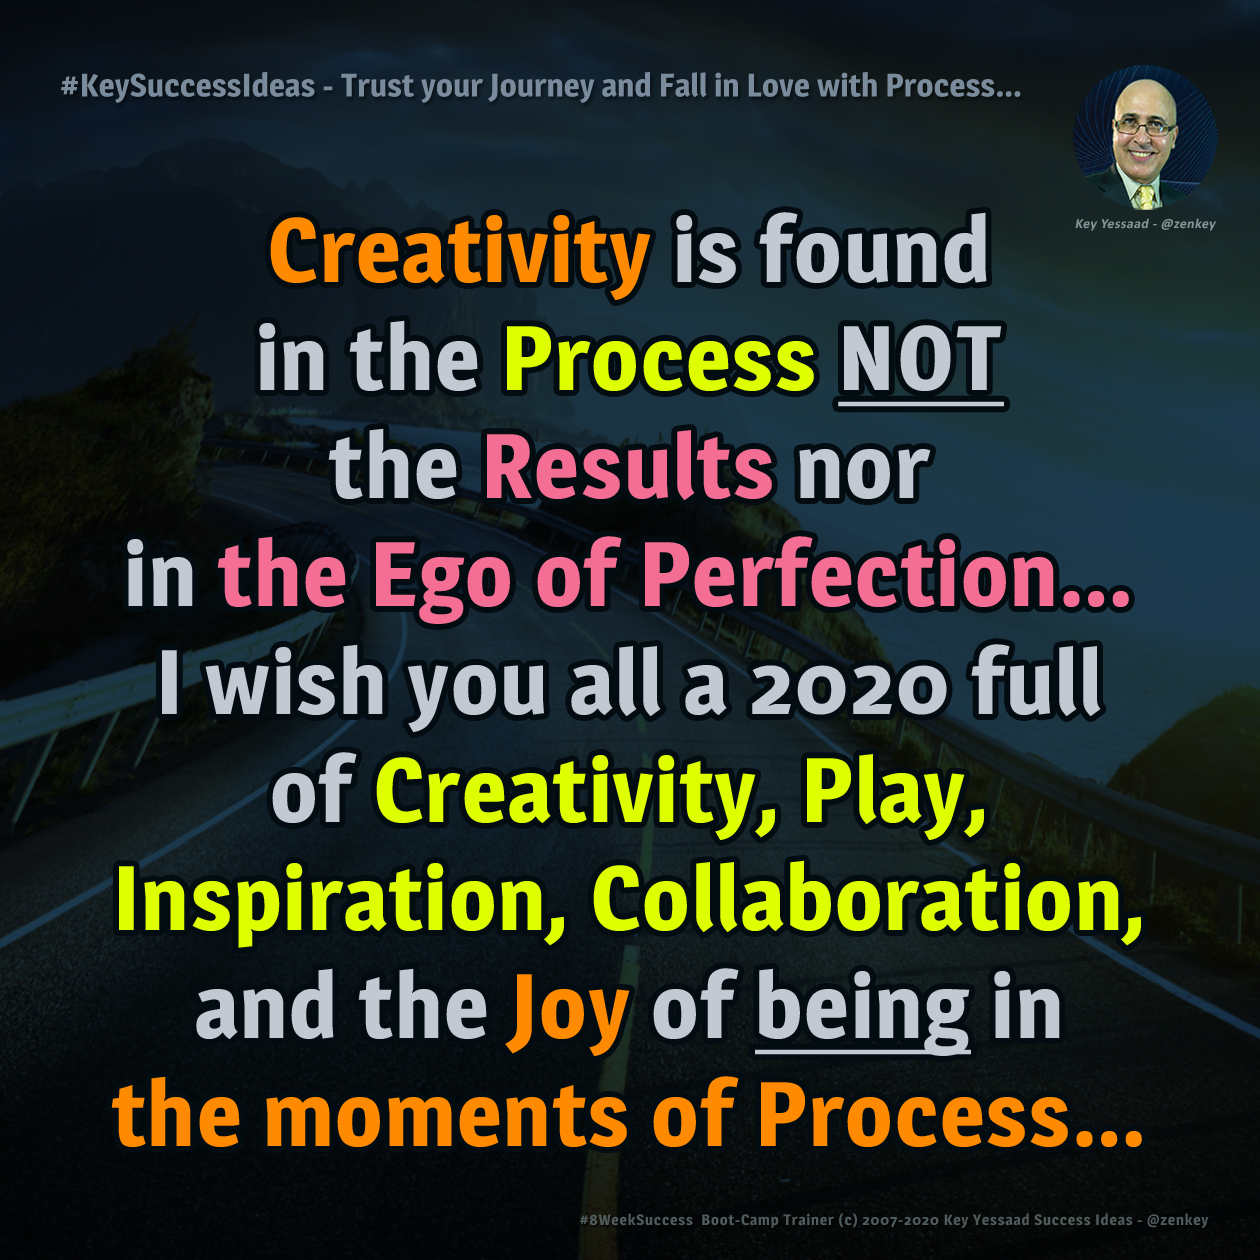 Trust your Journey and Fall in Love with Process... - #KeySuccessIdeas